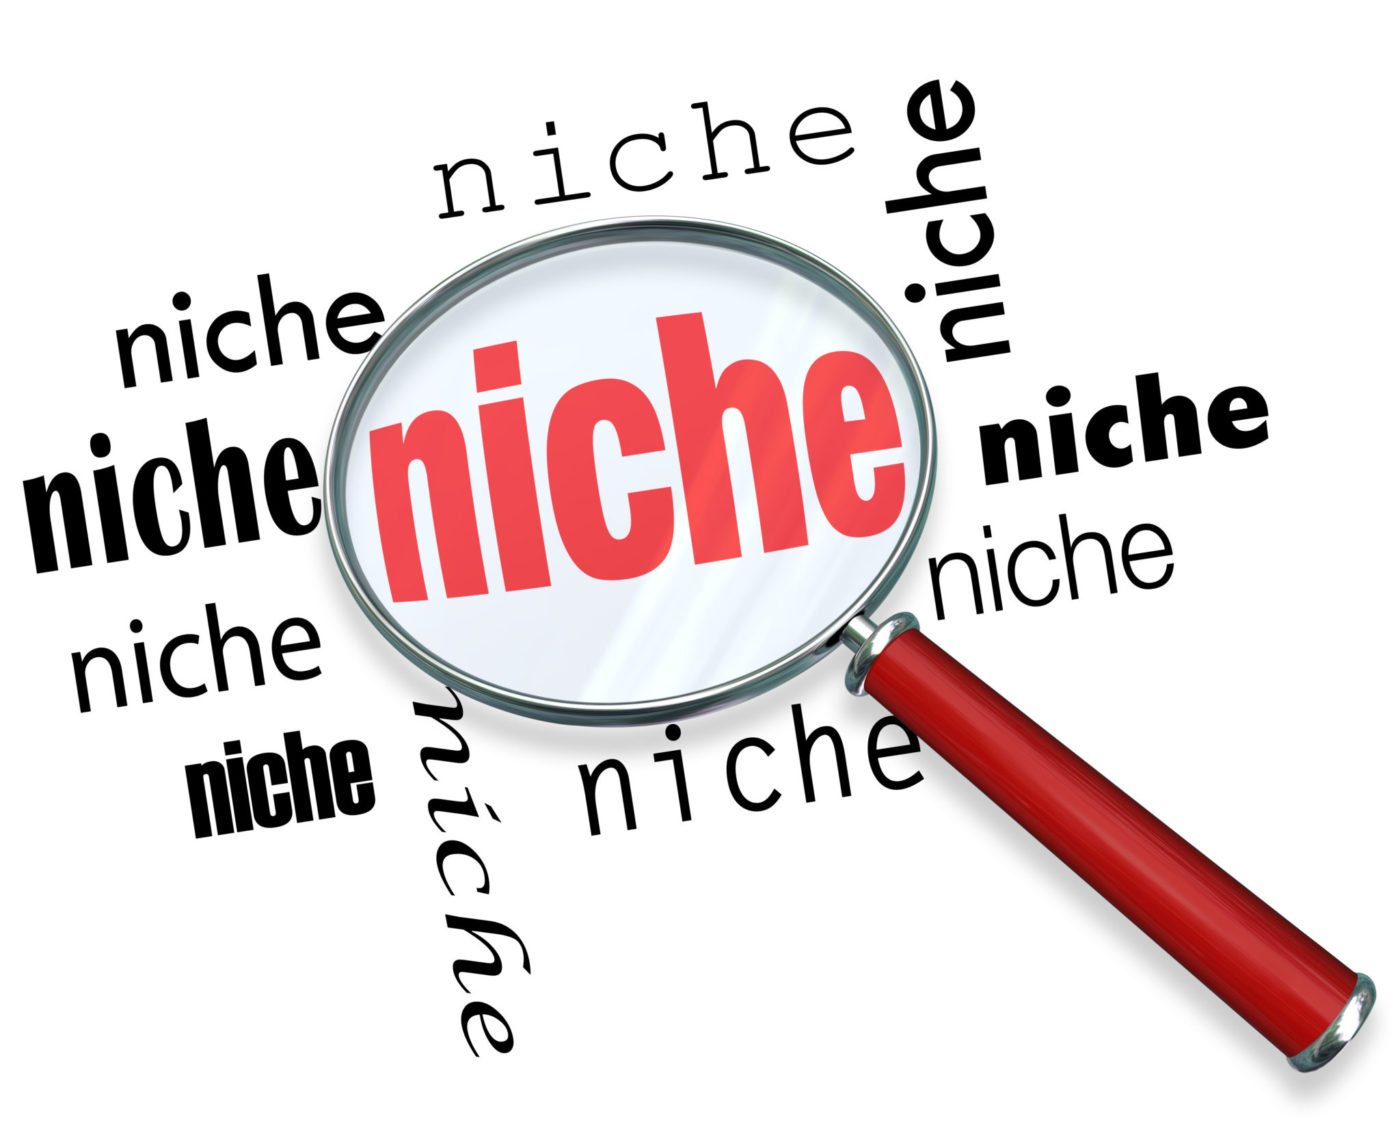 Agents need more than a niche and a farm to dominate a specific market